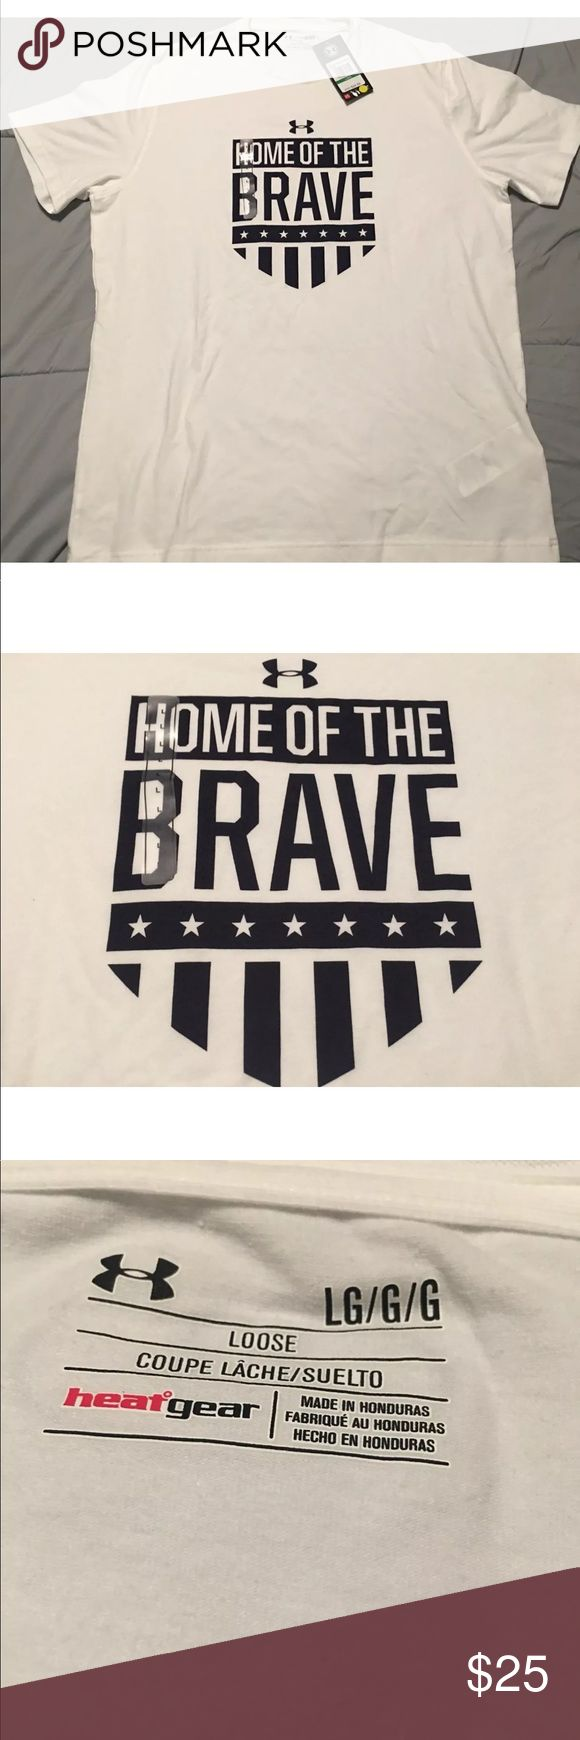 Under Armour Men's UA Home Of The Brave Tshirt Make a bold statement about your patriotic dedication in the Under Armour® Men's USA Home Of The Brave Graphic T-Shirt. Charged Cotton® fabric offers lightweight coverage and a super soft feel against your skin. Moisture-wicking properties work to eliminate sweat and keep you dry, while four-way stretch construction moves with you during any activity. Finished with a USA themed front graphic, the UA Home Of The Brave Tee is your next go-to top…